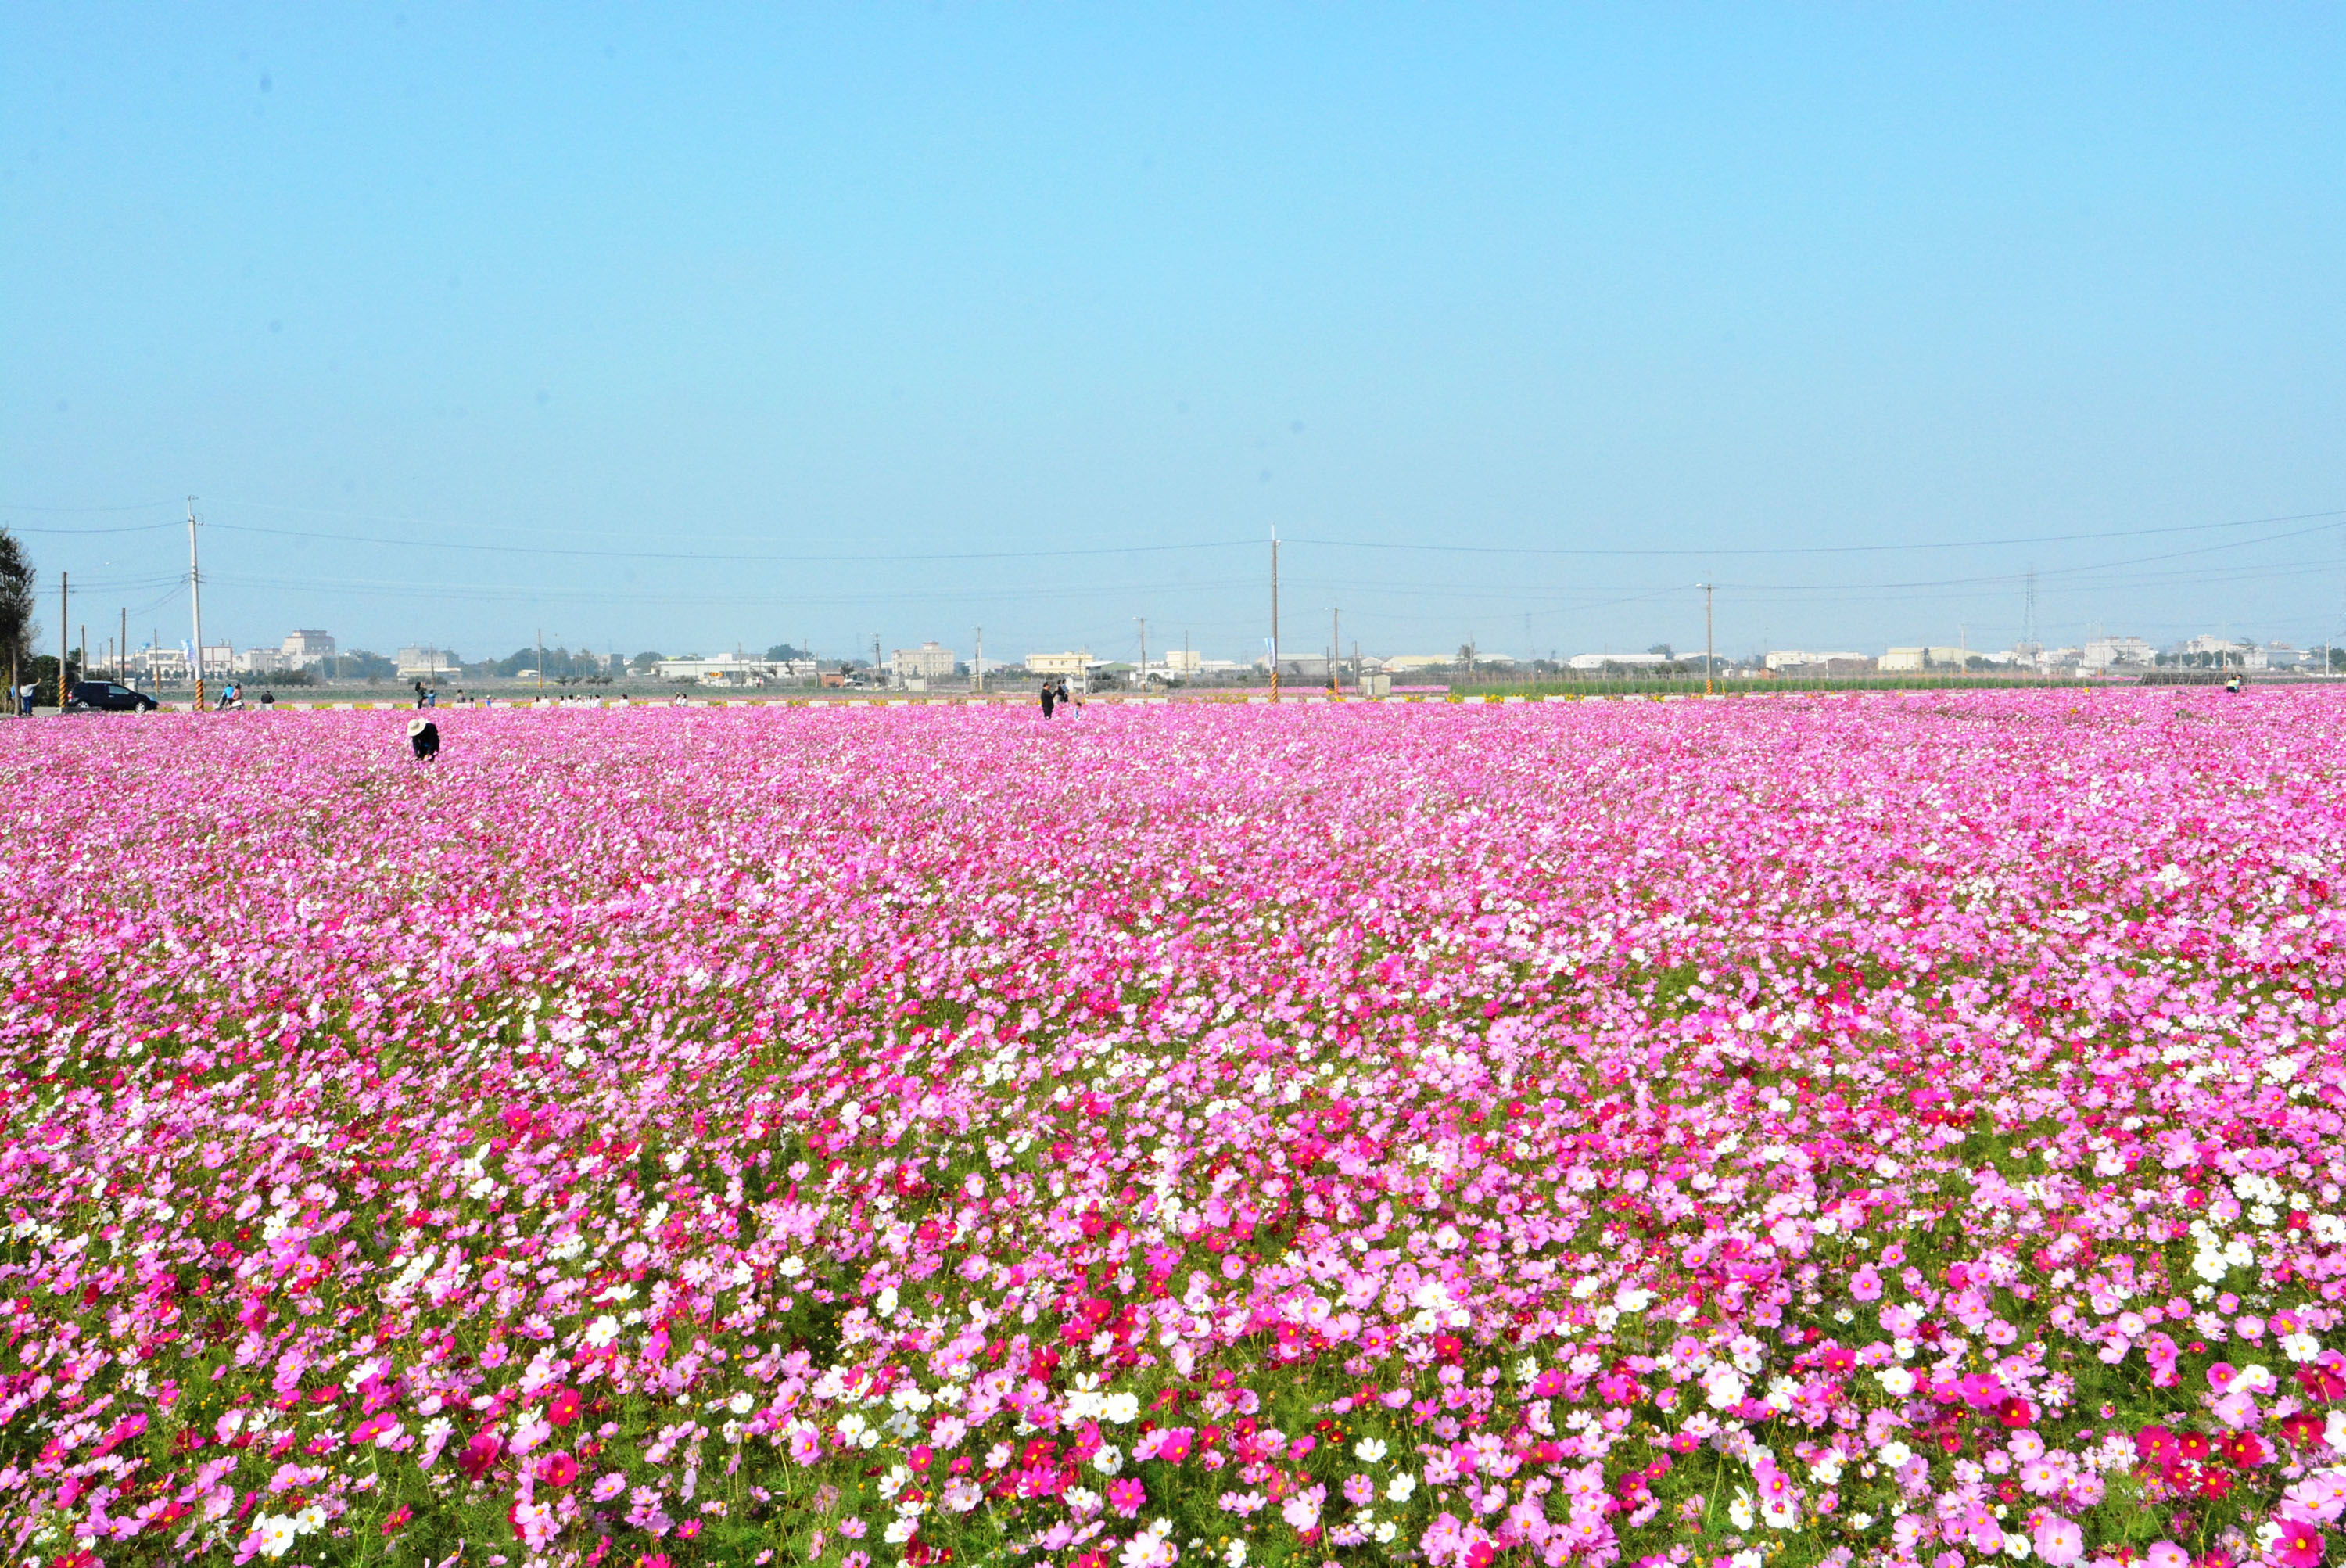 20-hectare field of flower paradise in Changhua County